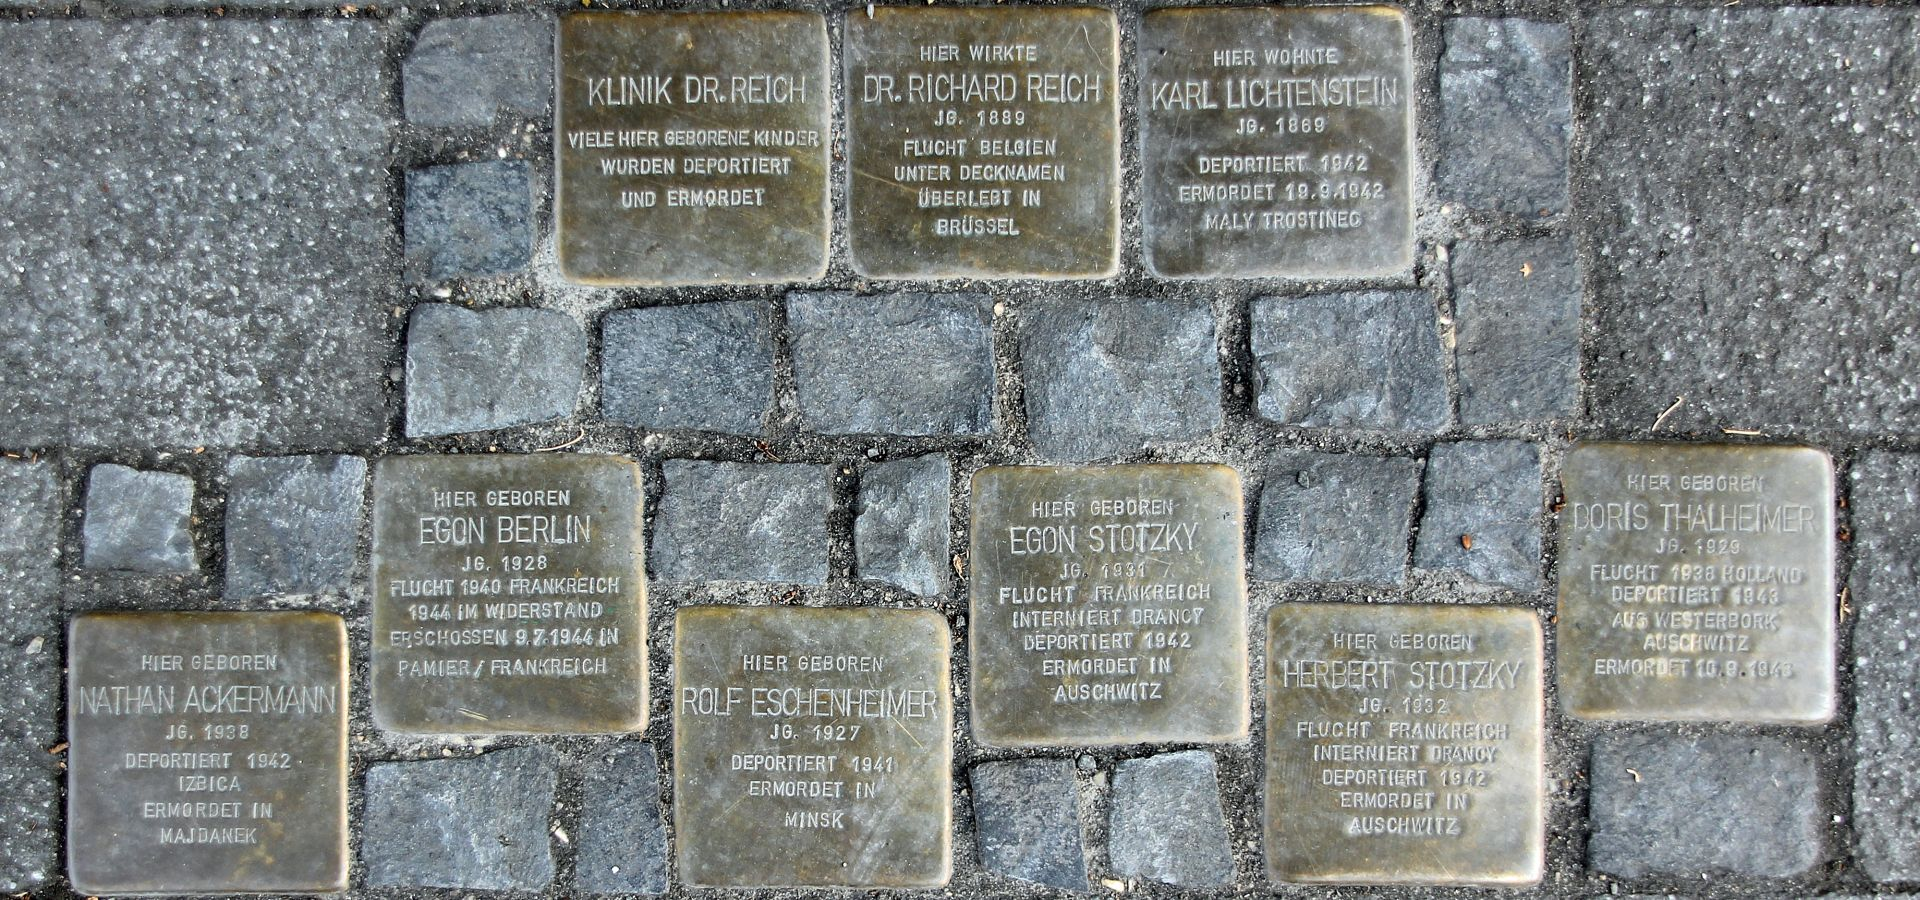 stolpersteine - memorial to the victims of Nazi regime